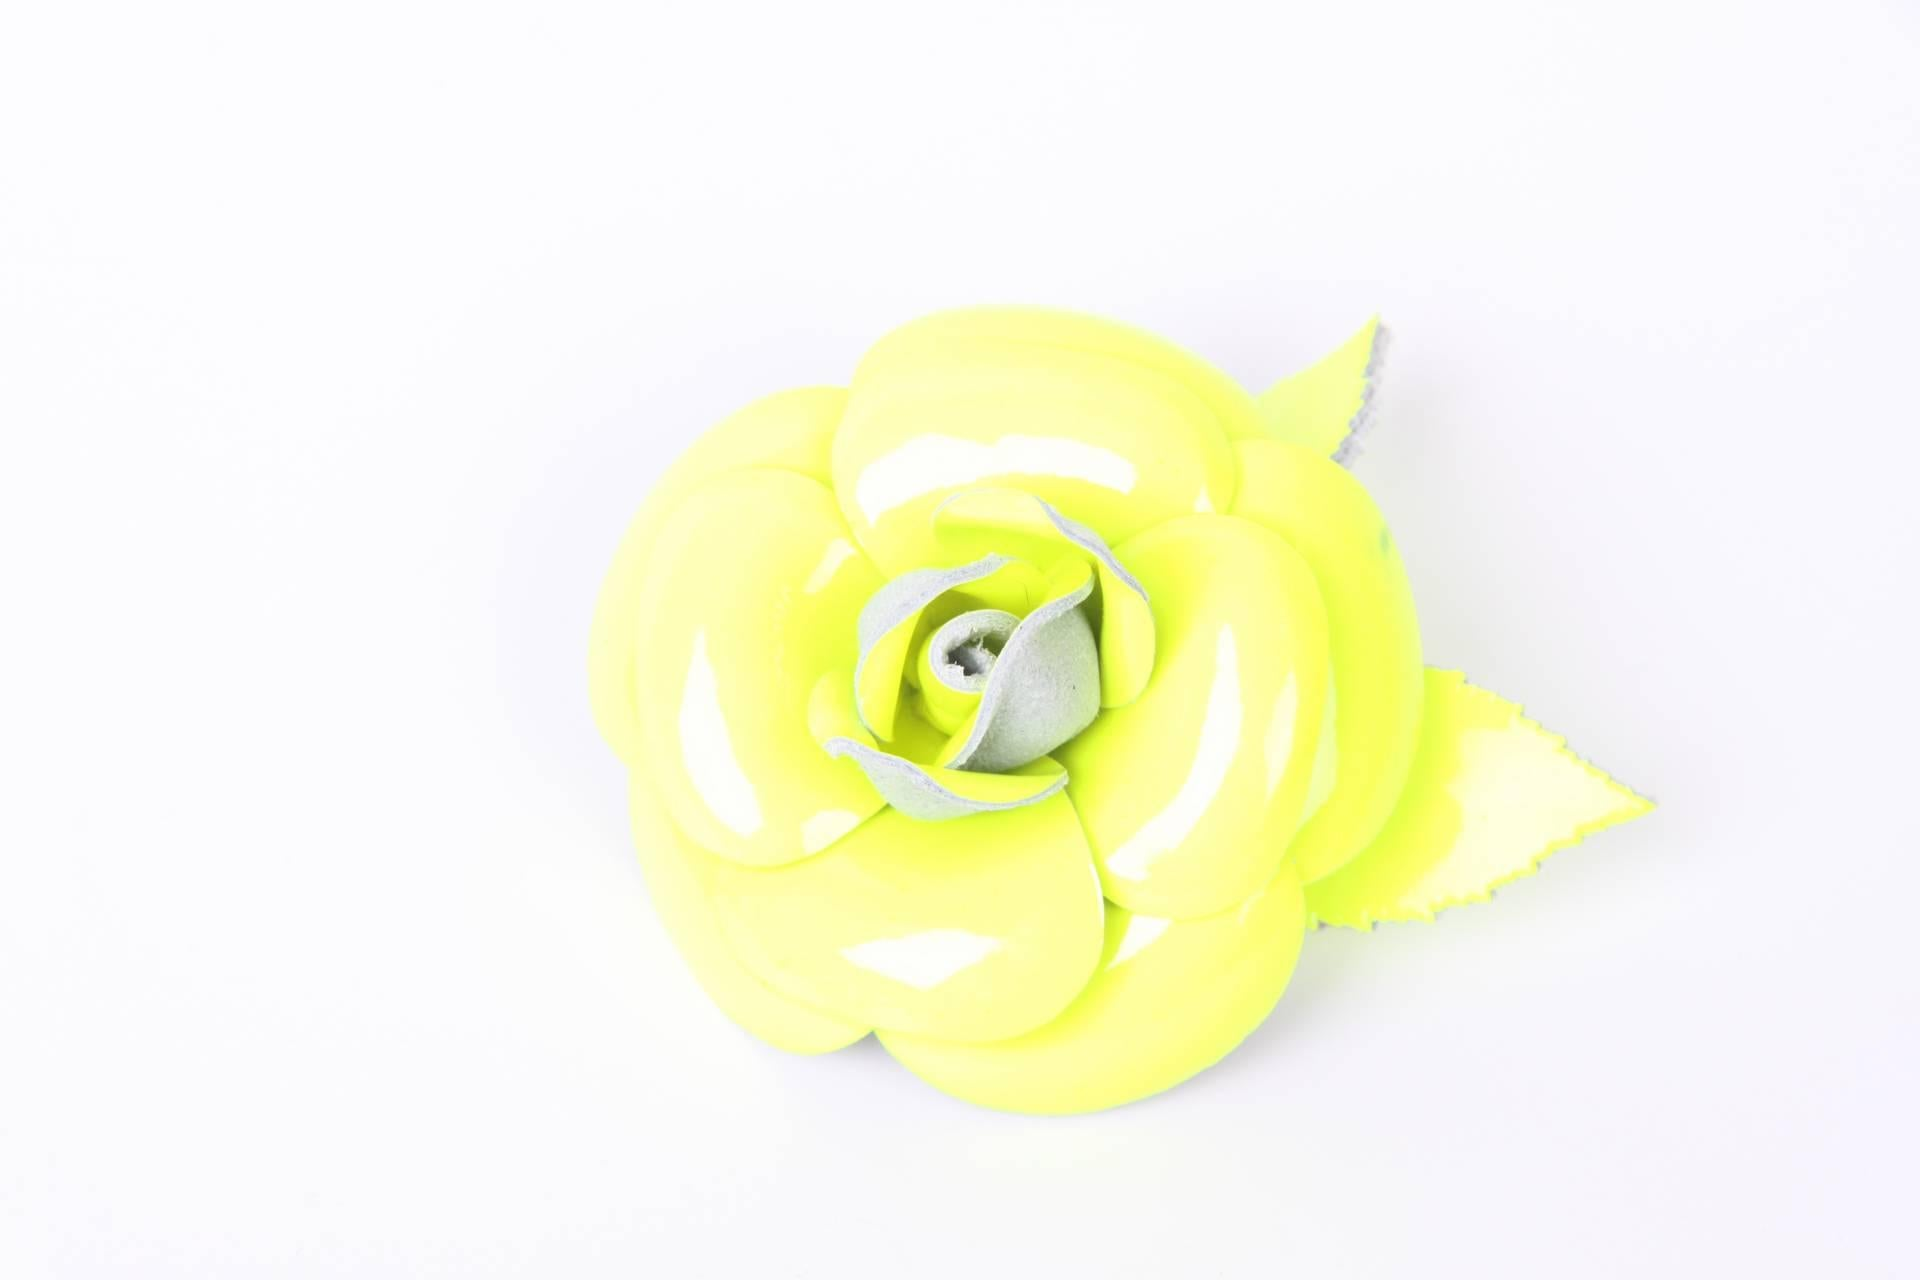 Chanel Patent Leather Camellia Brooch Pin - Fluorescent Yellow giKrUl